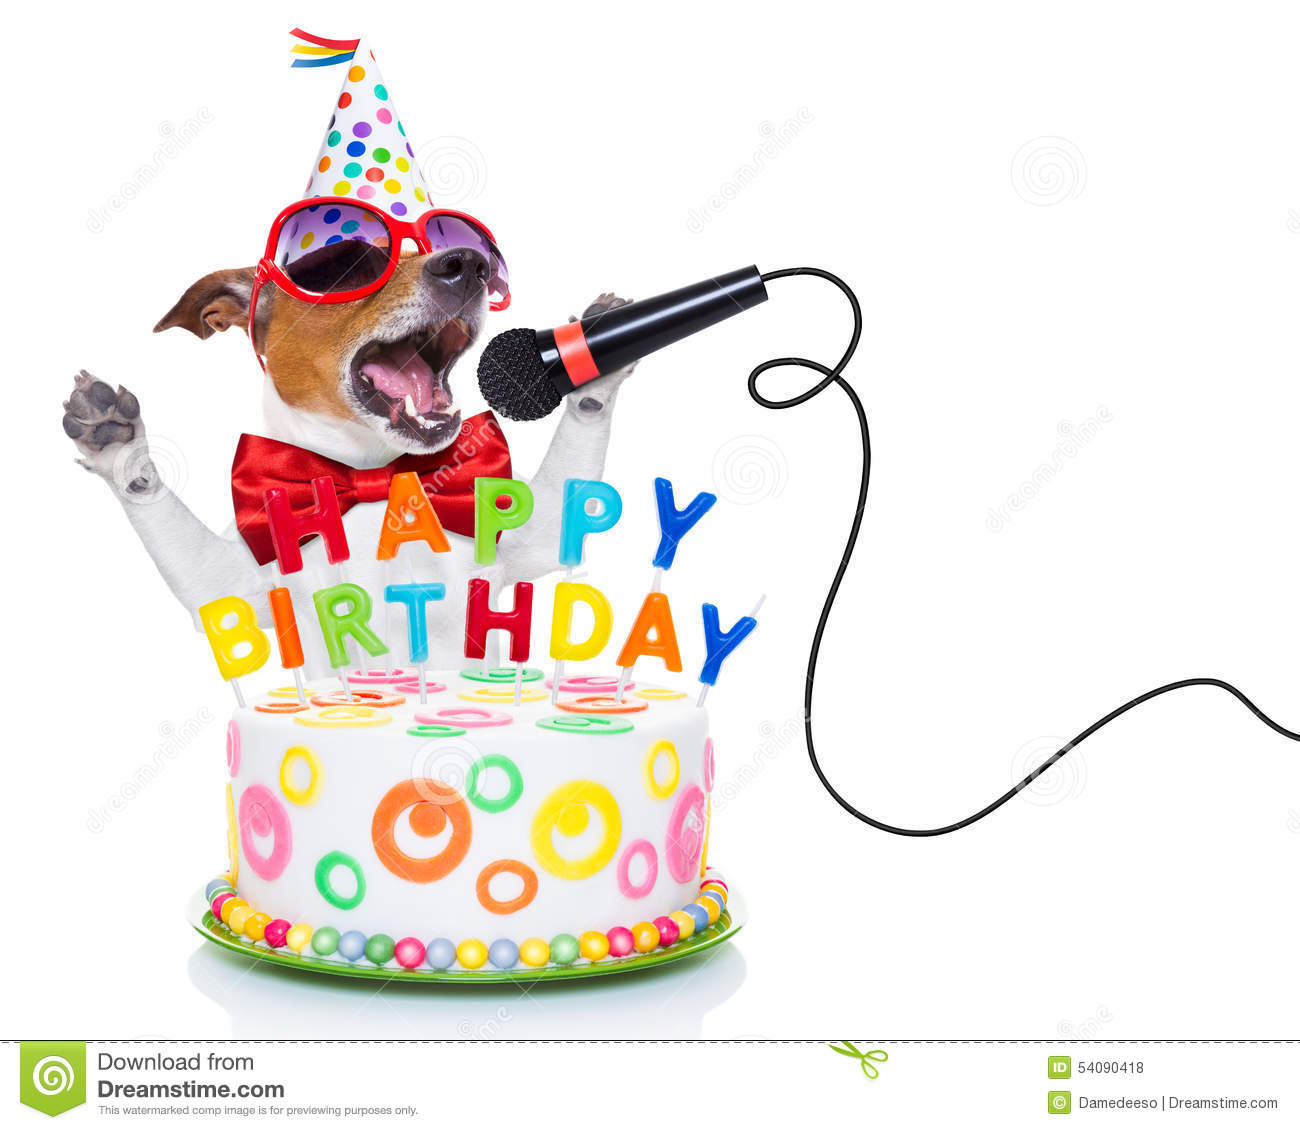 happy birthday dog clipart ; happy-birthday-dog-jack-russell-as-surprise-singing-song-like-karaoke-microphone-behind-funny-cake-wearing-red-tie-54090418